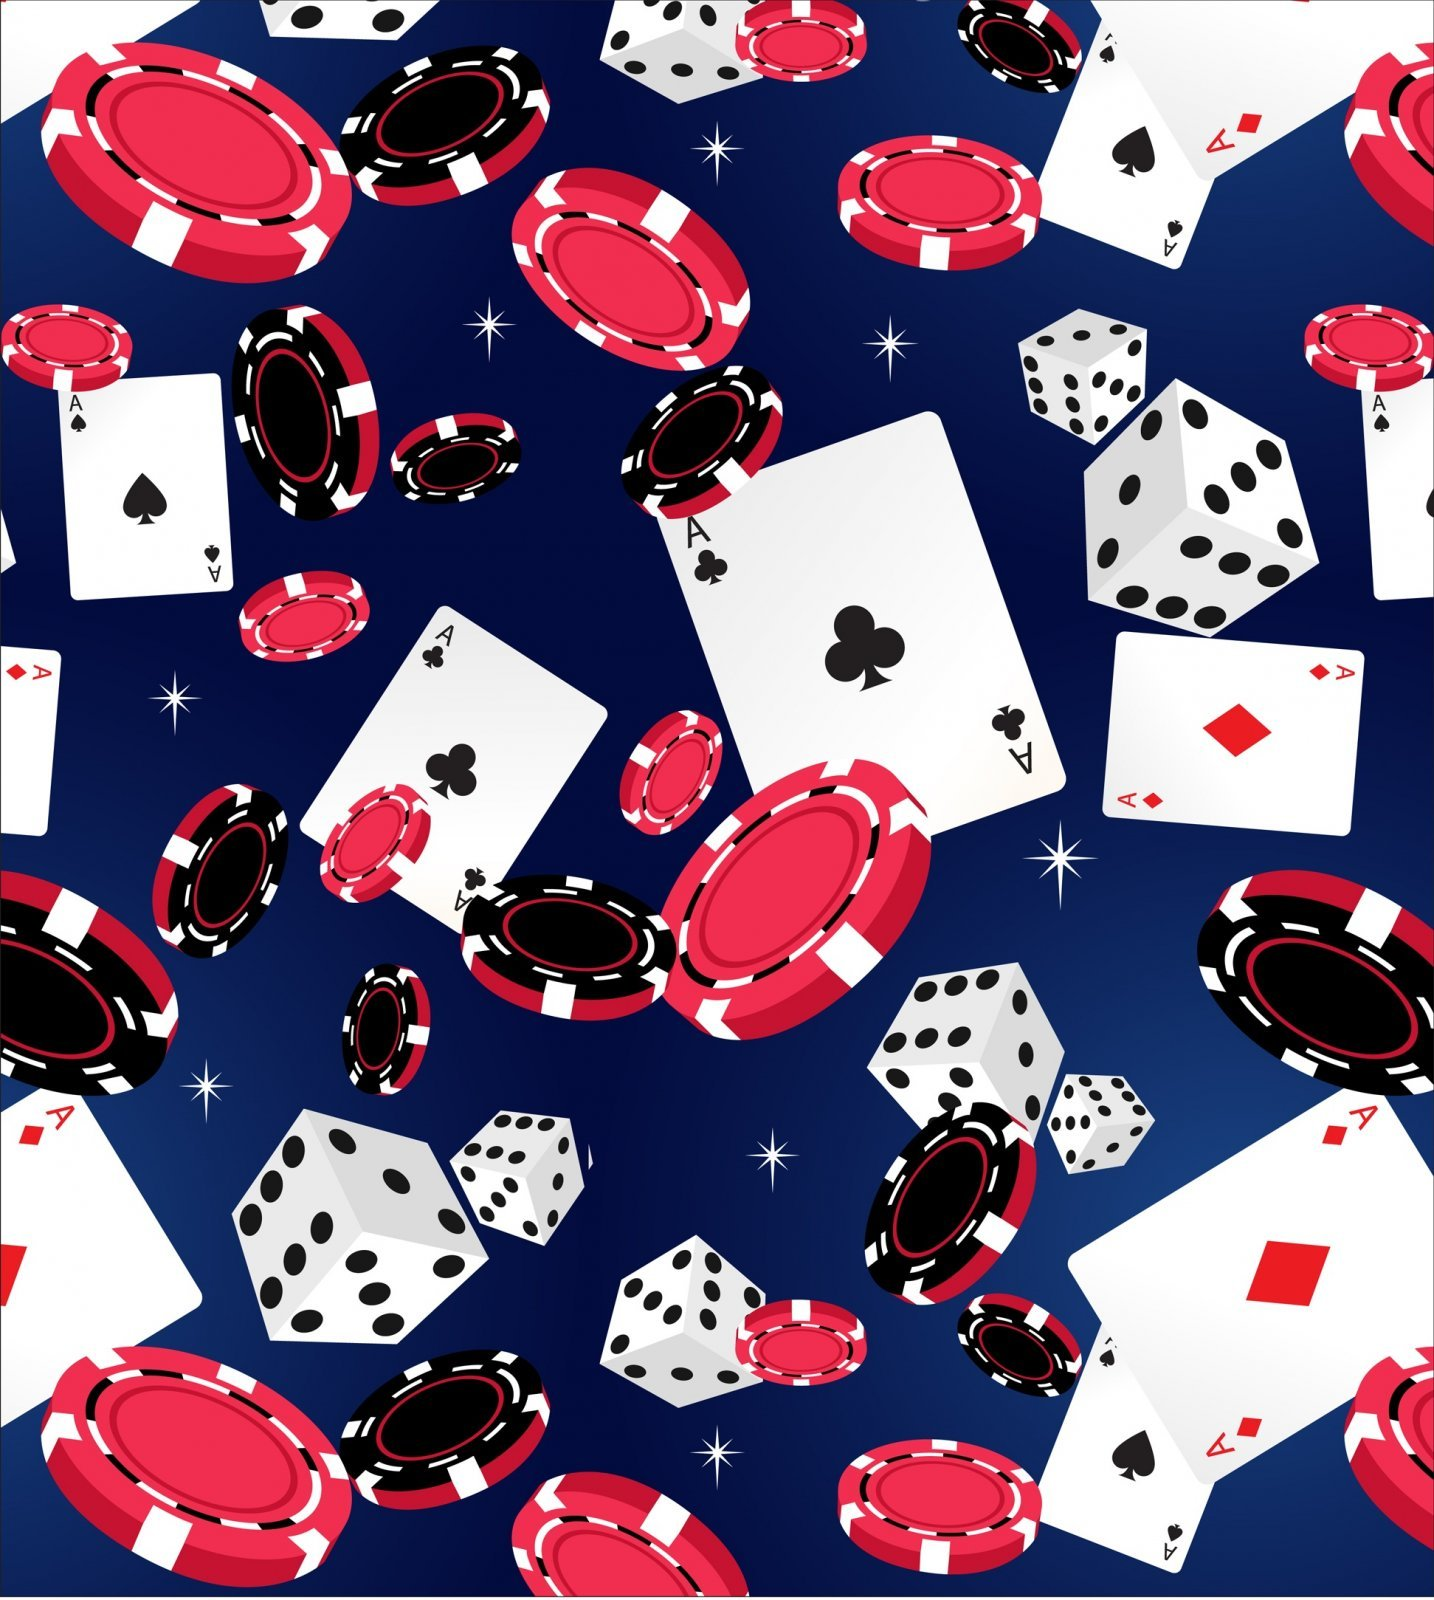 Casino 2530-2 Blue Dice Chips Cards